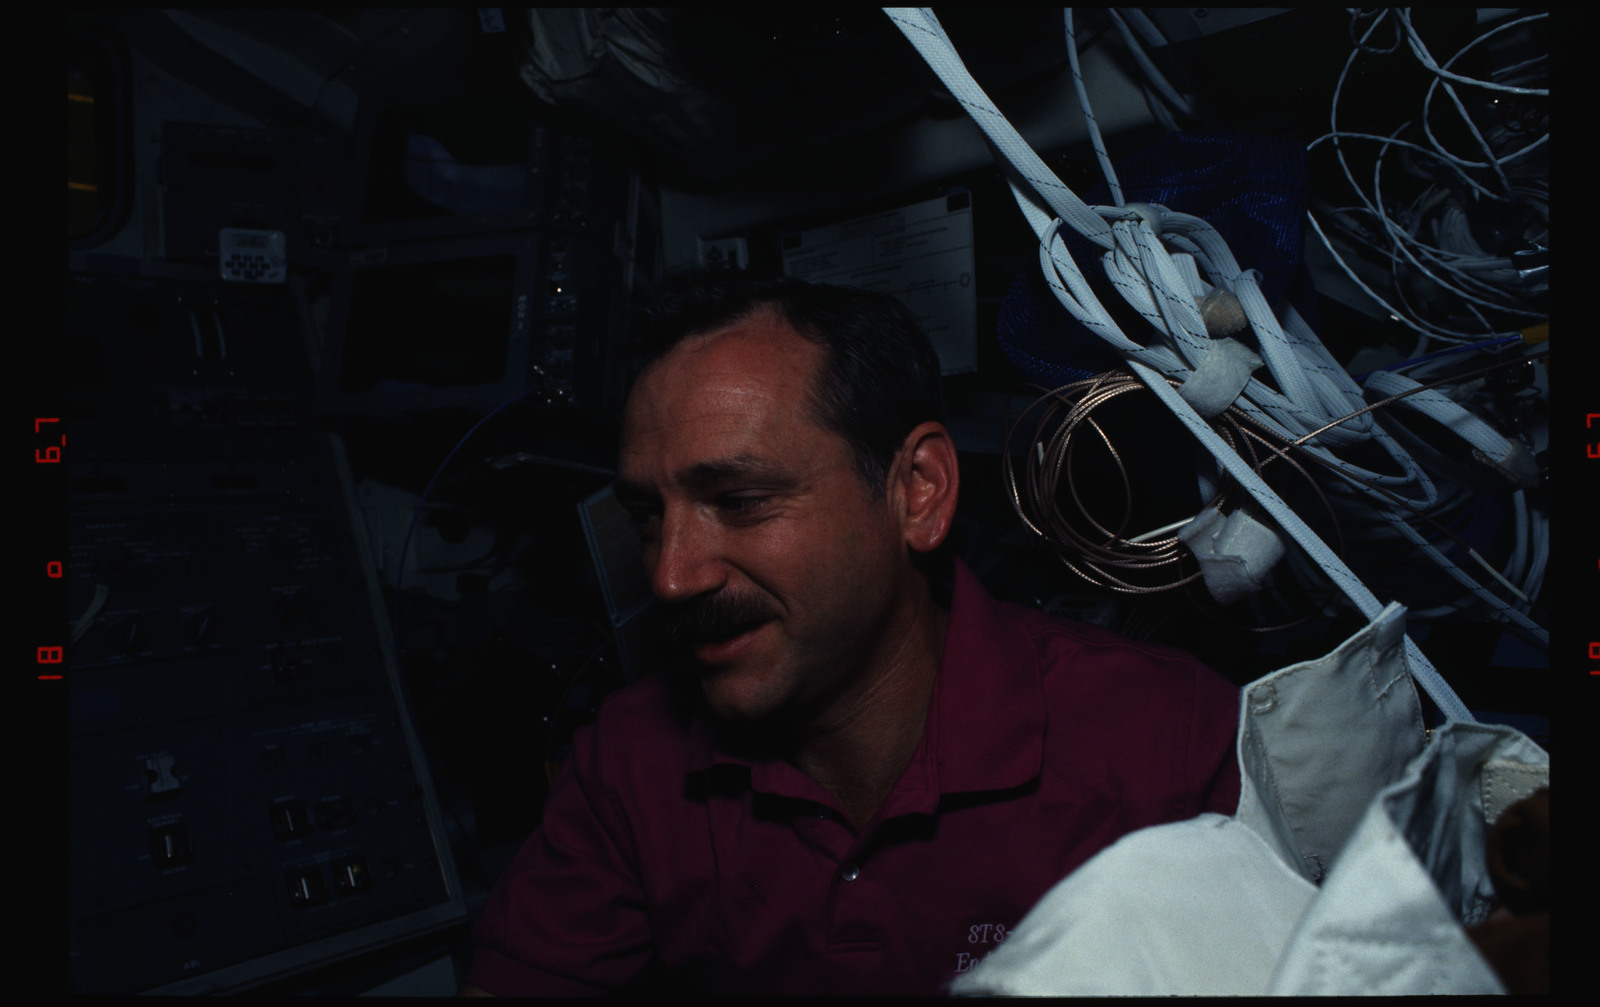 STS061-12-009 - STS-061 - Various views of the STS-61 crew on the Endeavour's flight deck